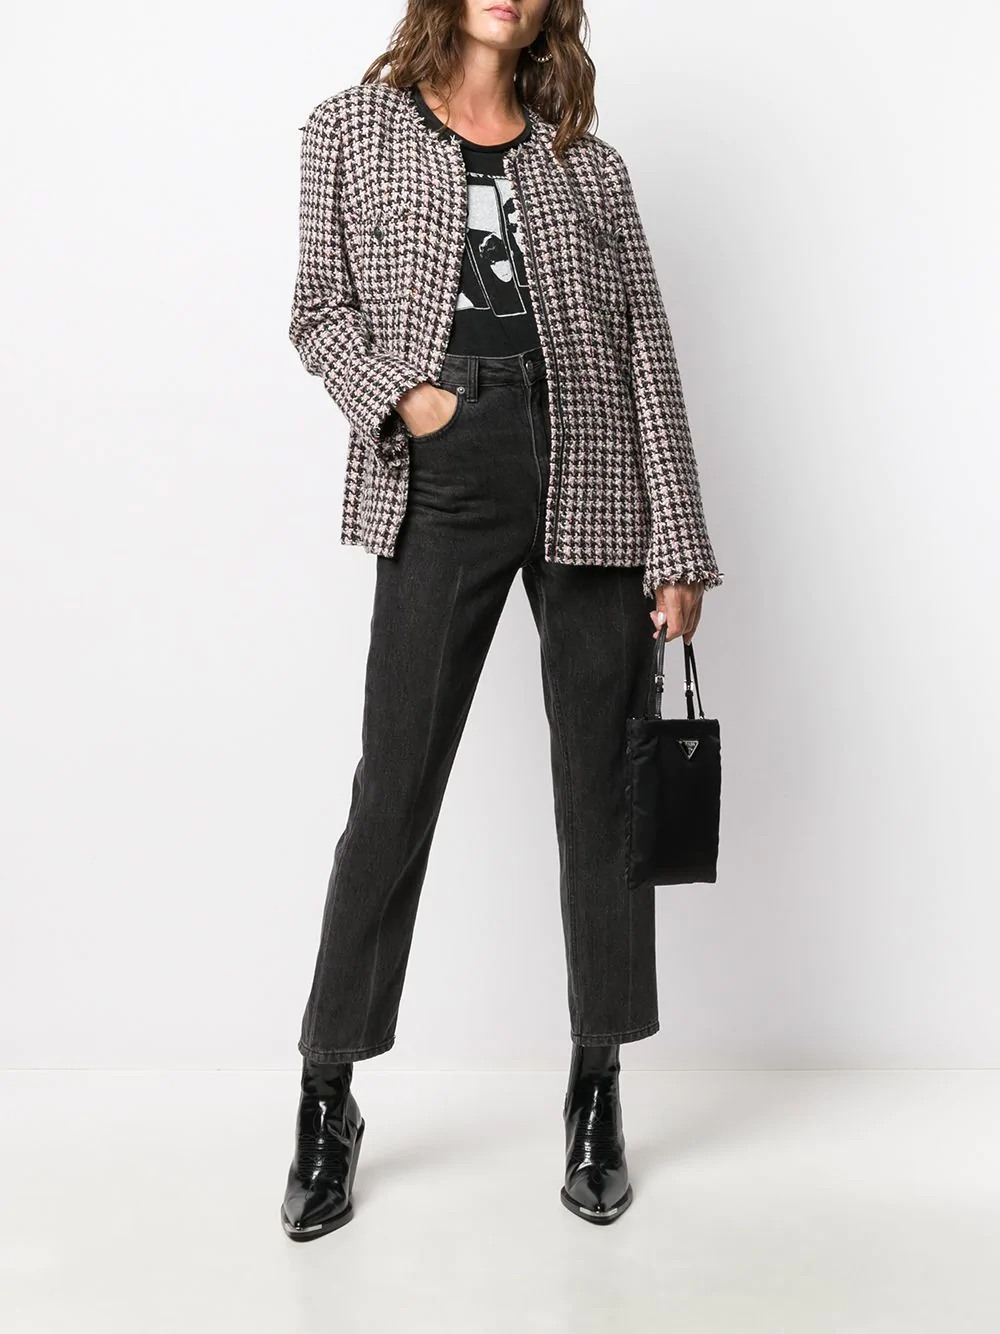 chanel-pre-owned-2008-single-breasted-tweed-houndstooth-jacket